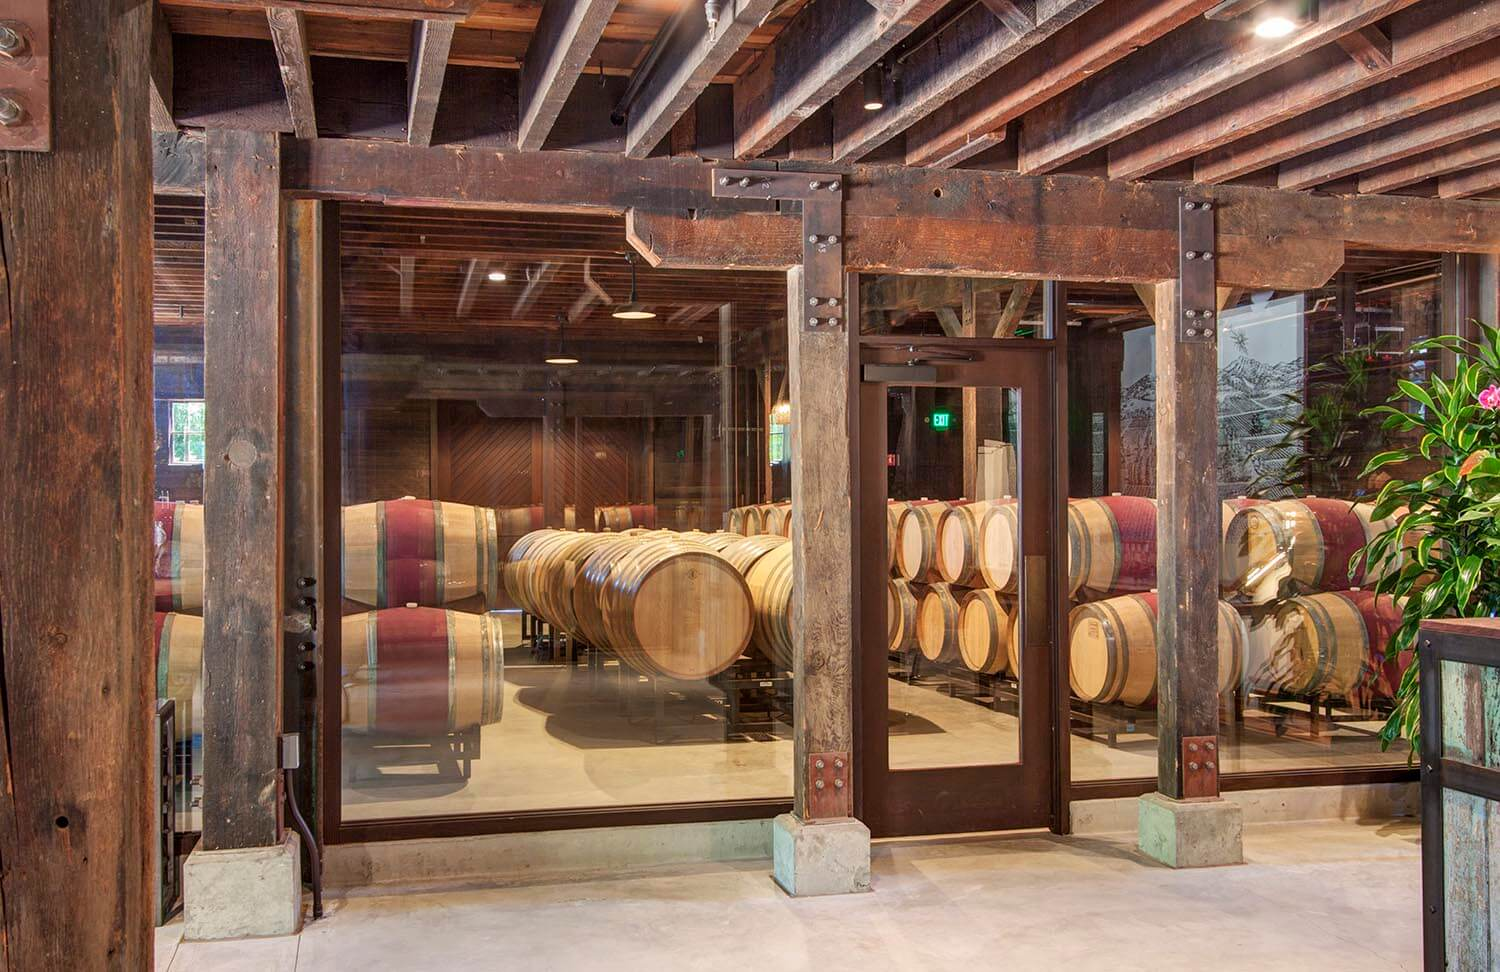 Interior view of wine barrel storage room behind glass walls and closed, glass door